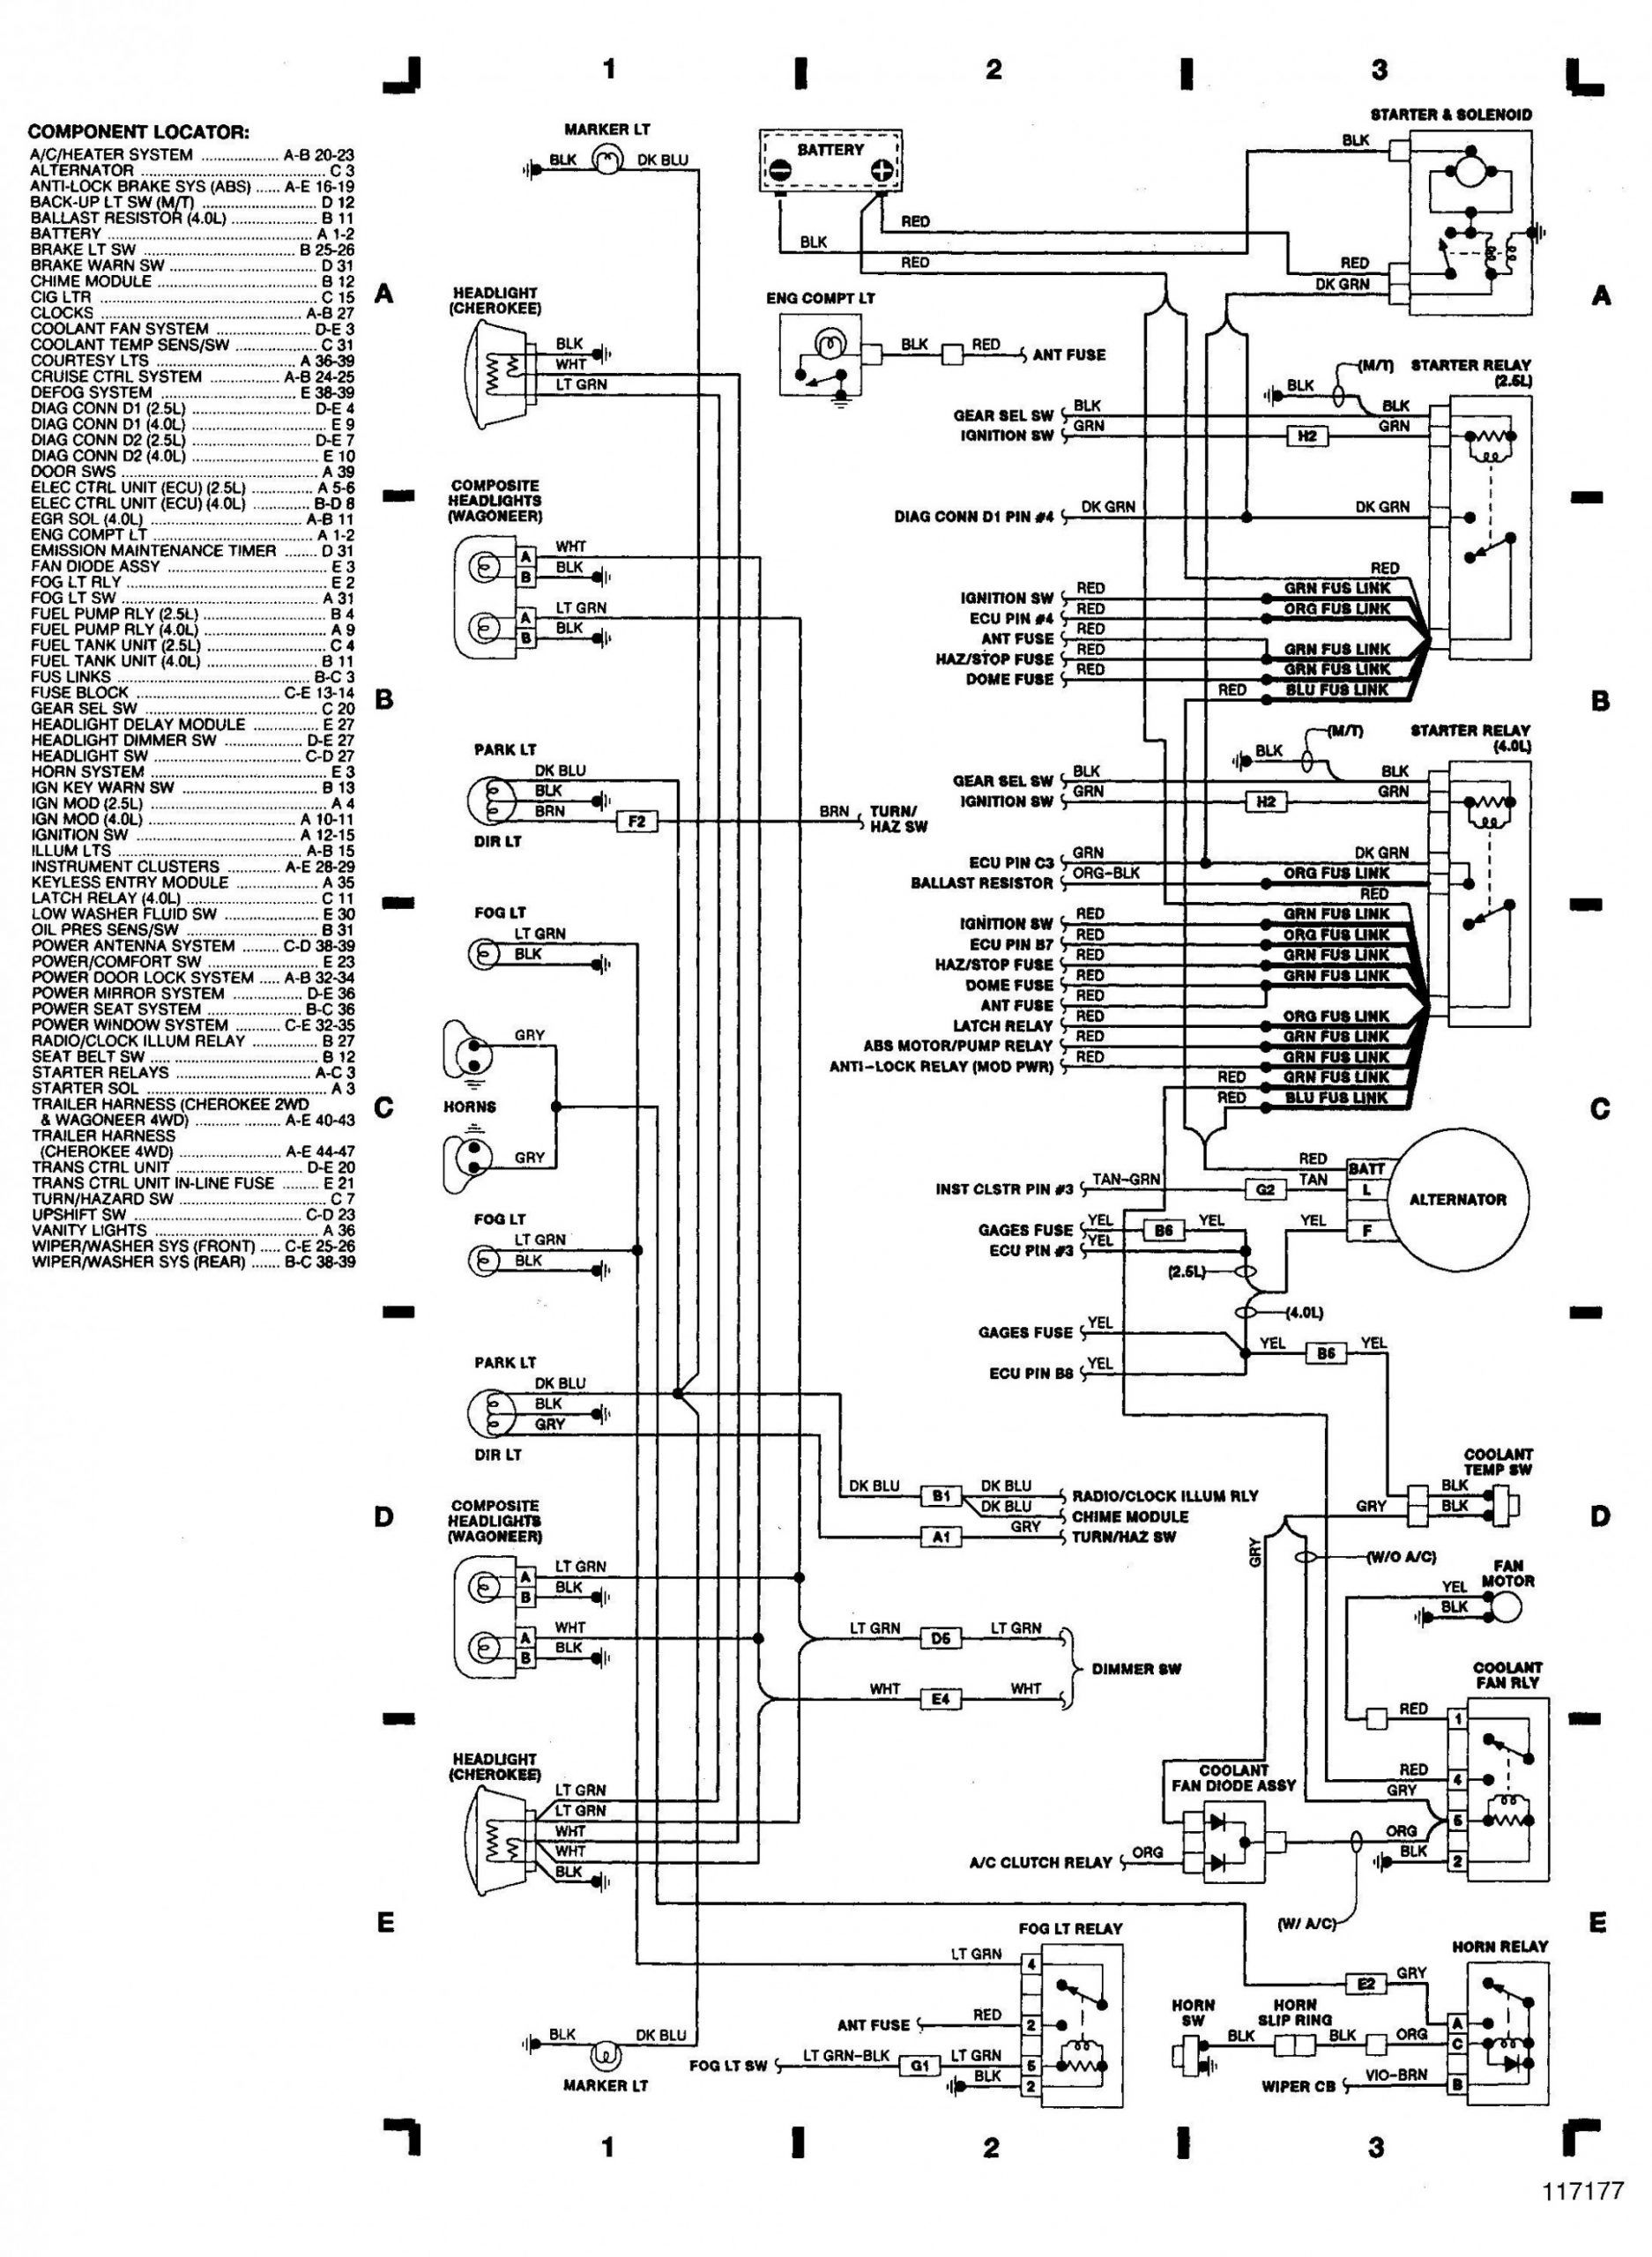 Engine Wiring Diagram Jeep Tj Yamaha | Jeep grand cherokee, Jeep cherokee,  Jeep grand | Wrangler Tj Headlight Wiring Diagram |  | Pinterest